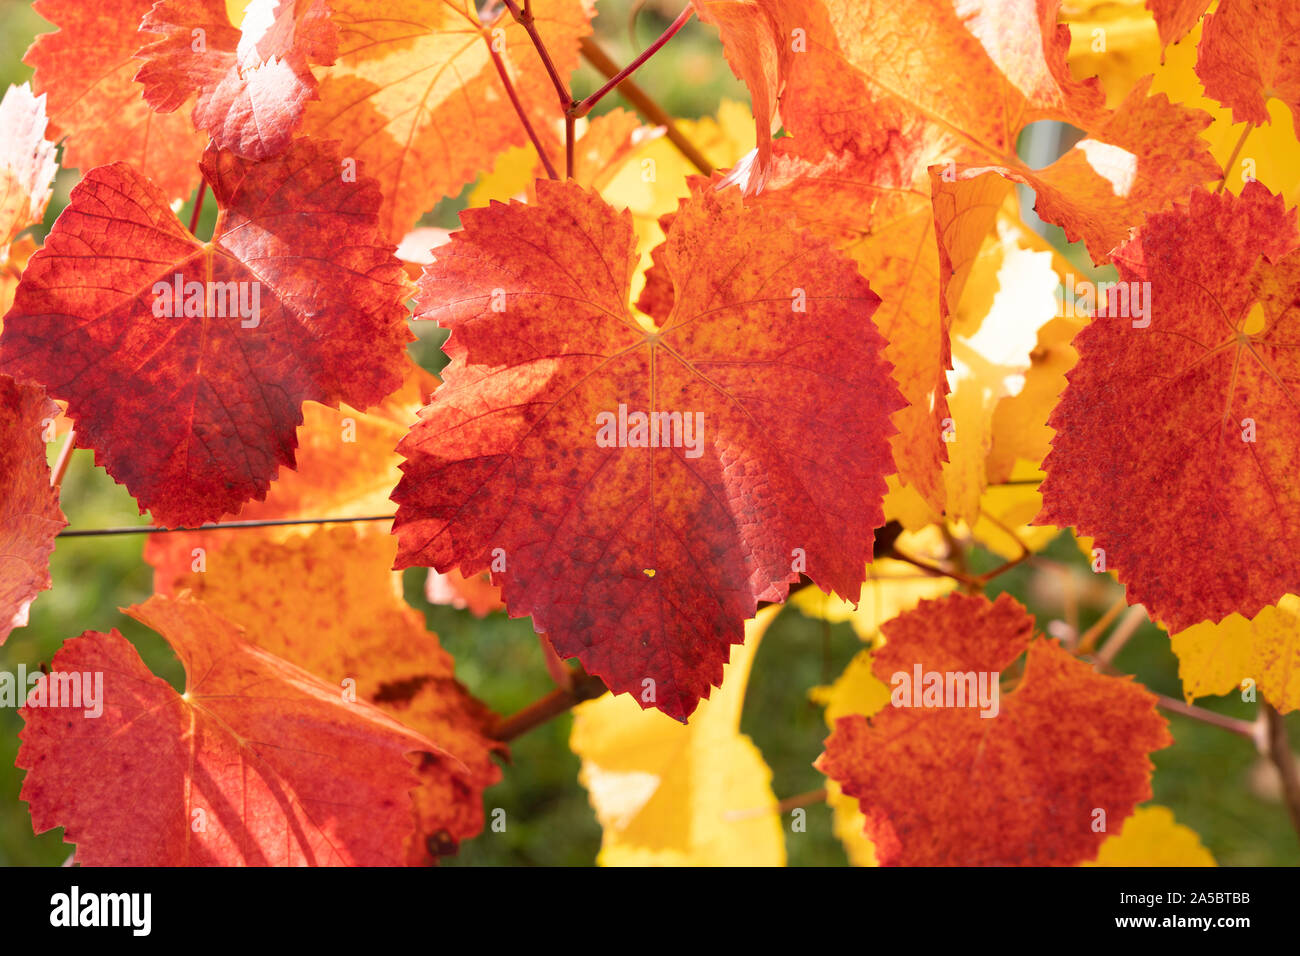 a-closeup-of-vivid-red-and-yellow-leaves